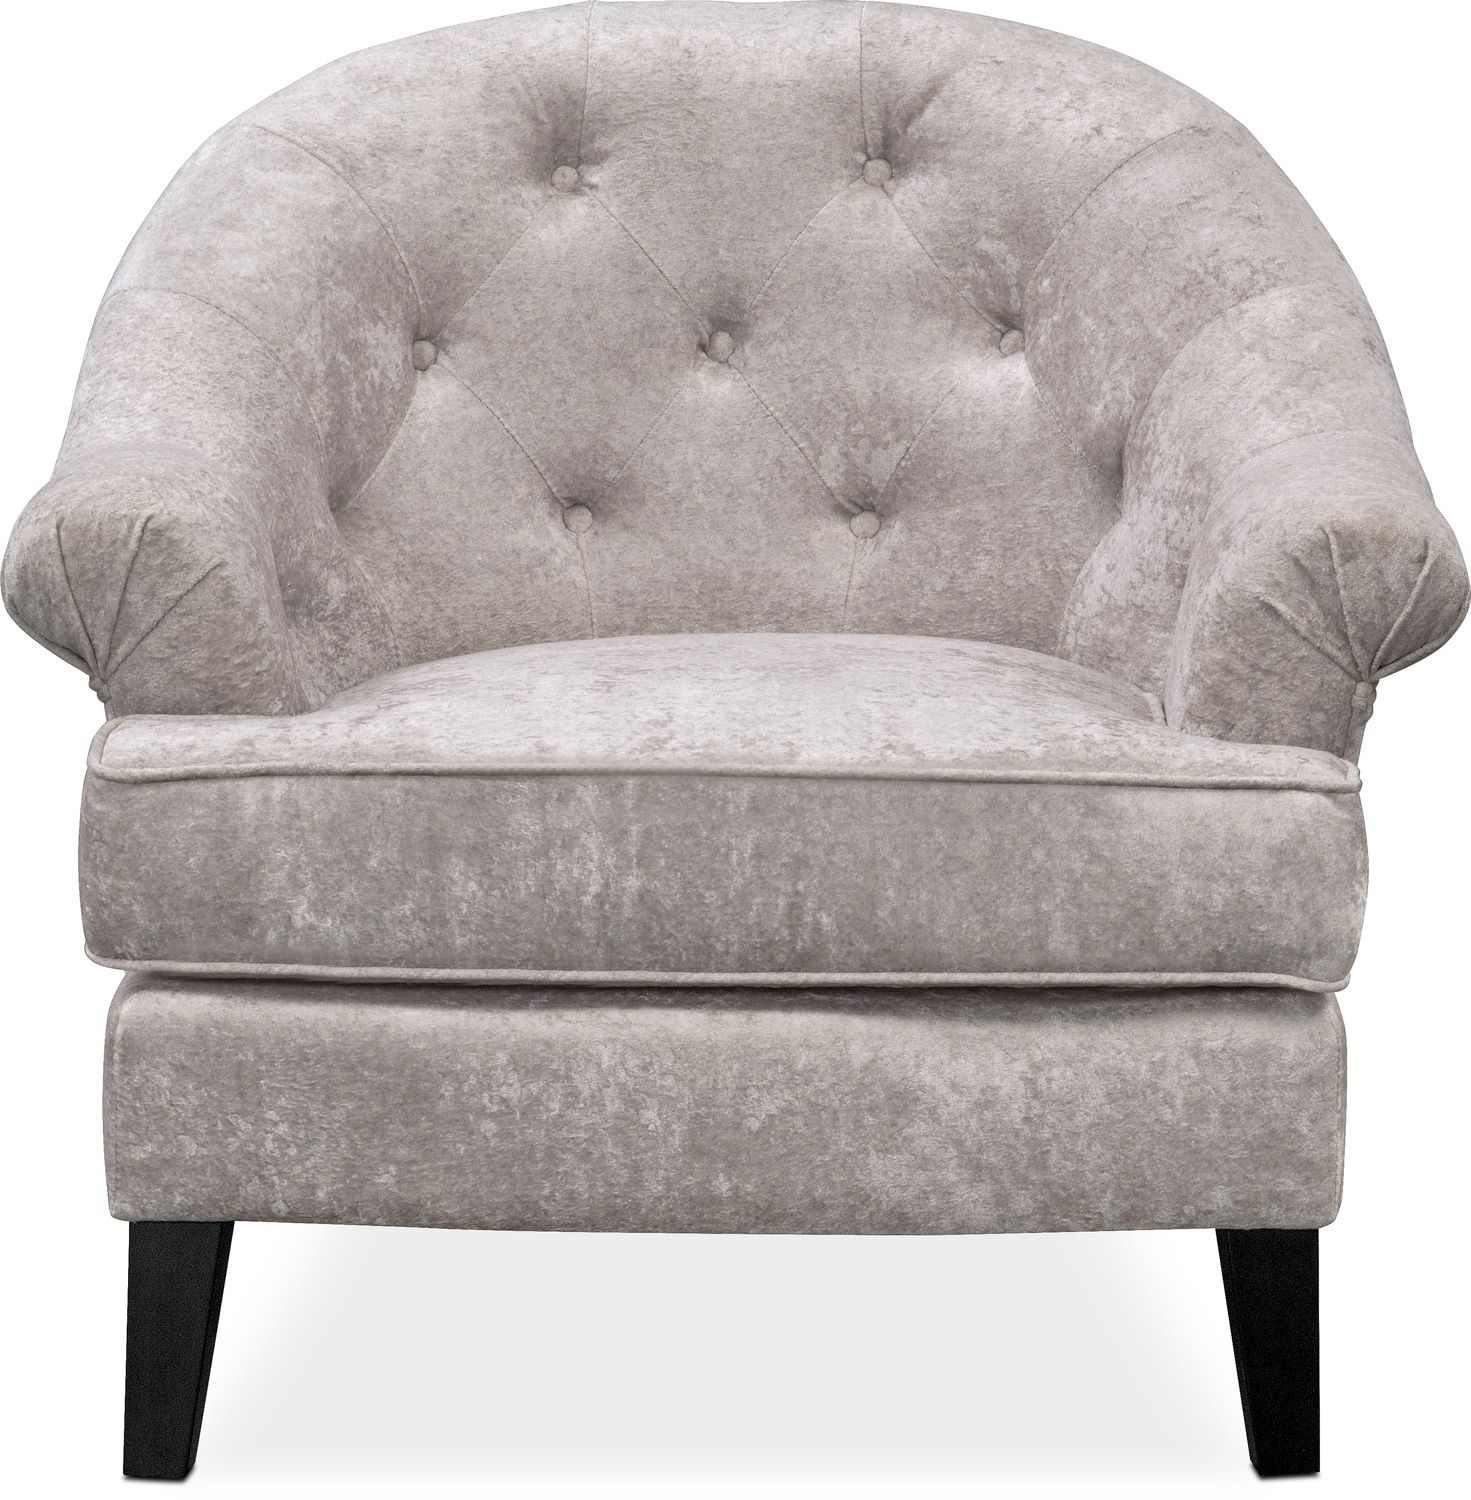 Value City Chairs Kings Road Accent Chair Silver Value City Furniture And